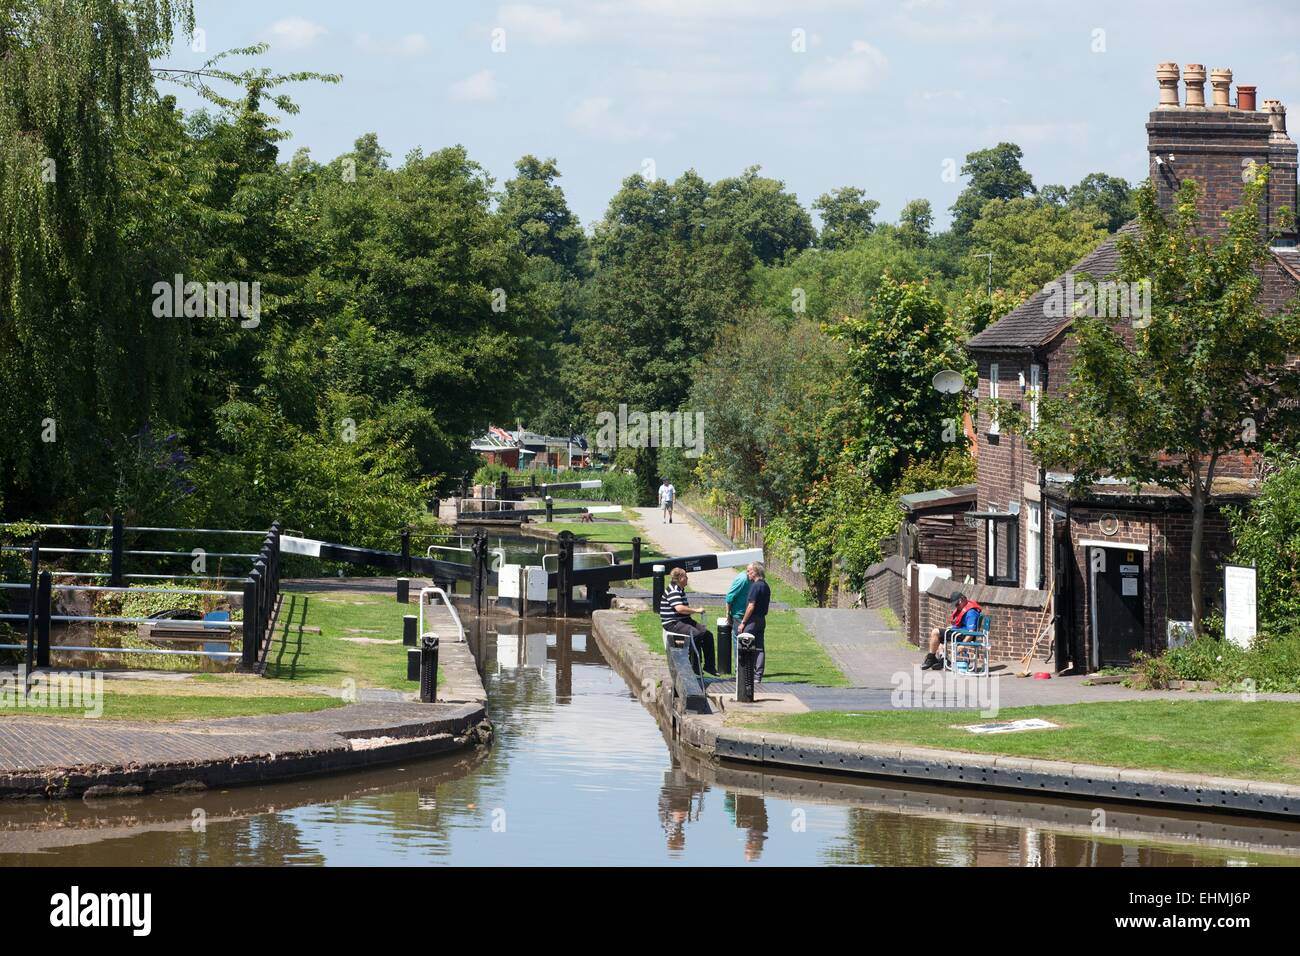 The Coventry Canal at Atherstone, Warwickshire, UK - Stock Image